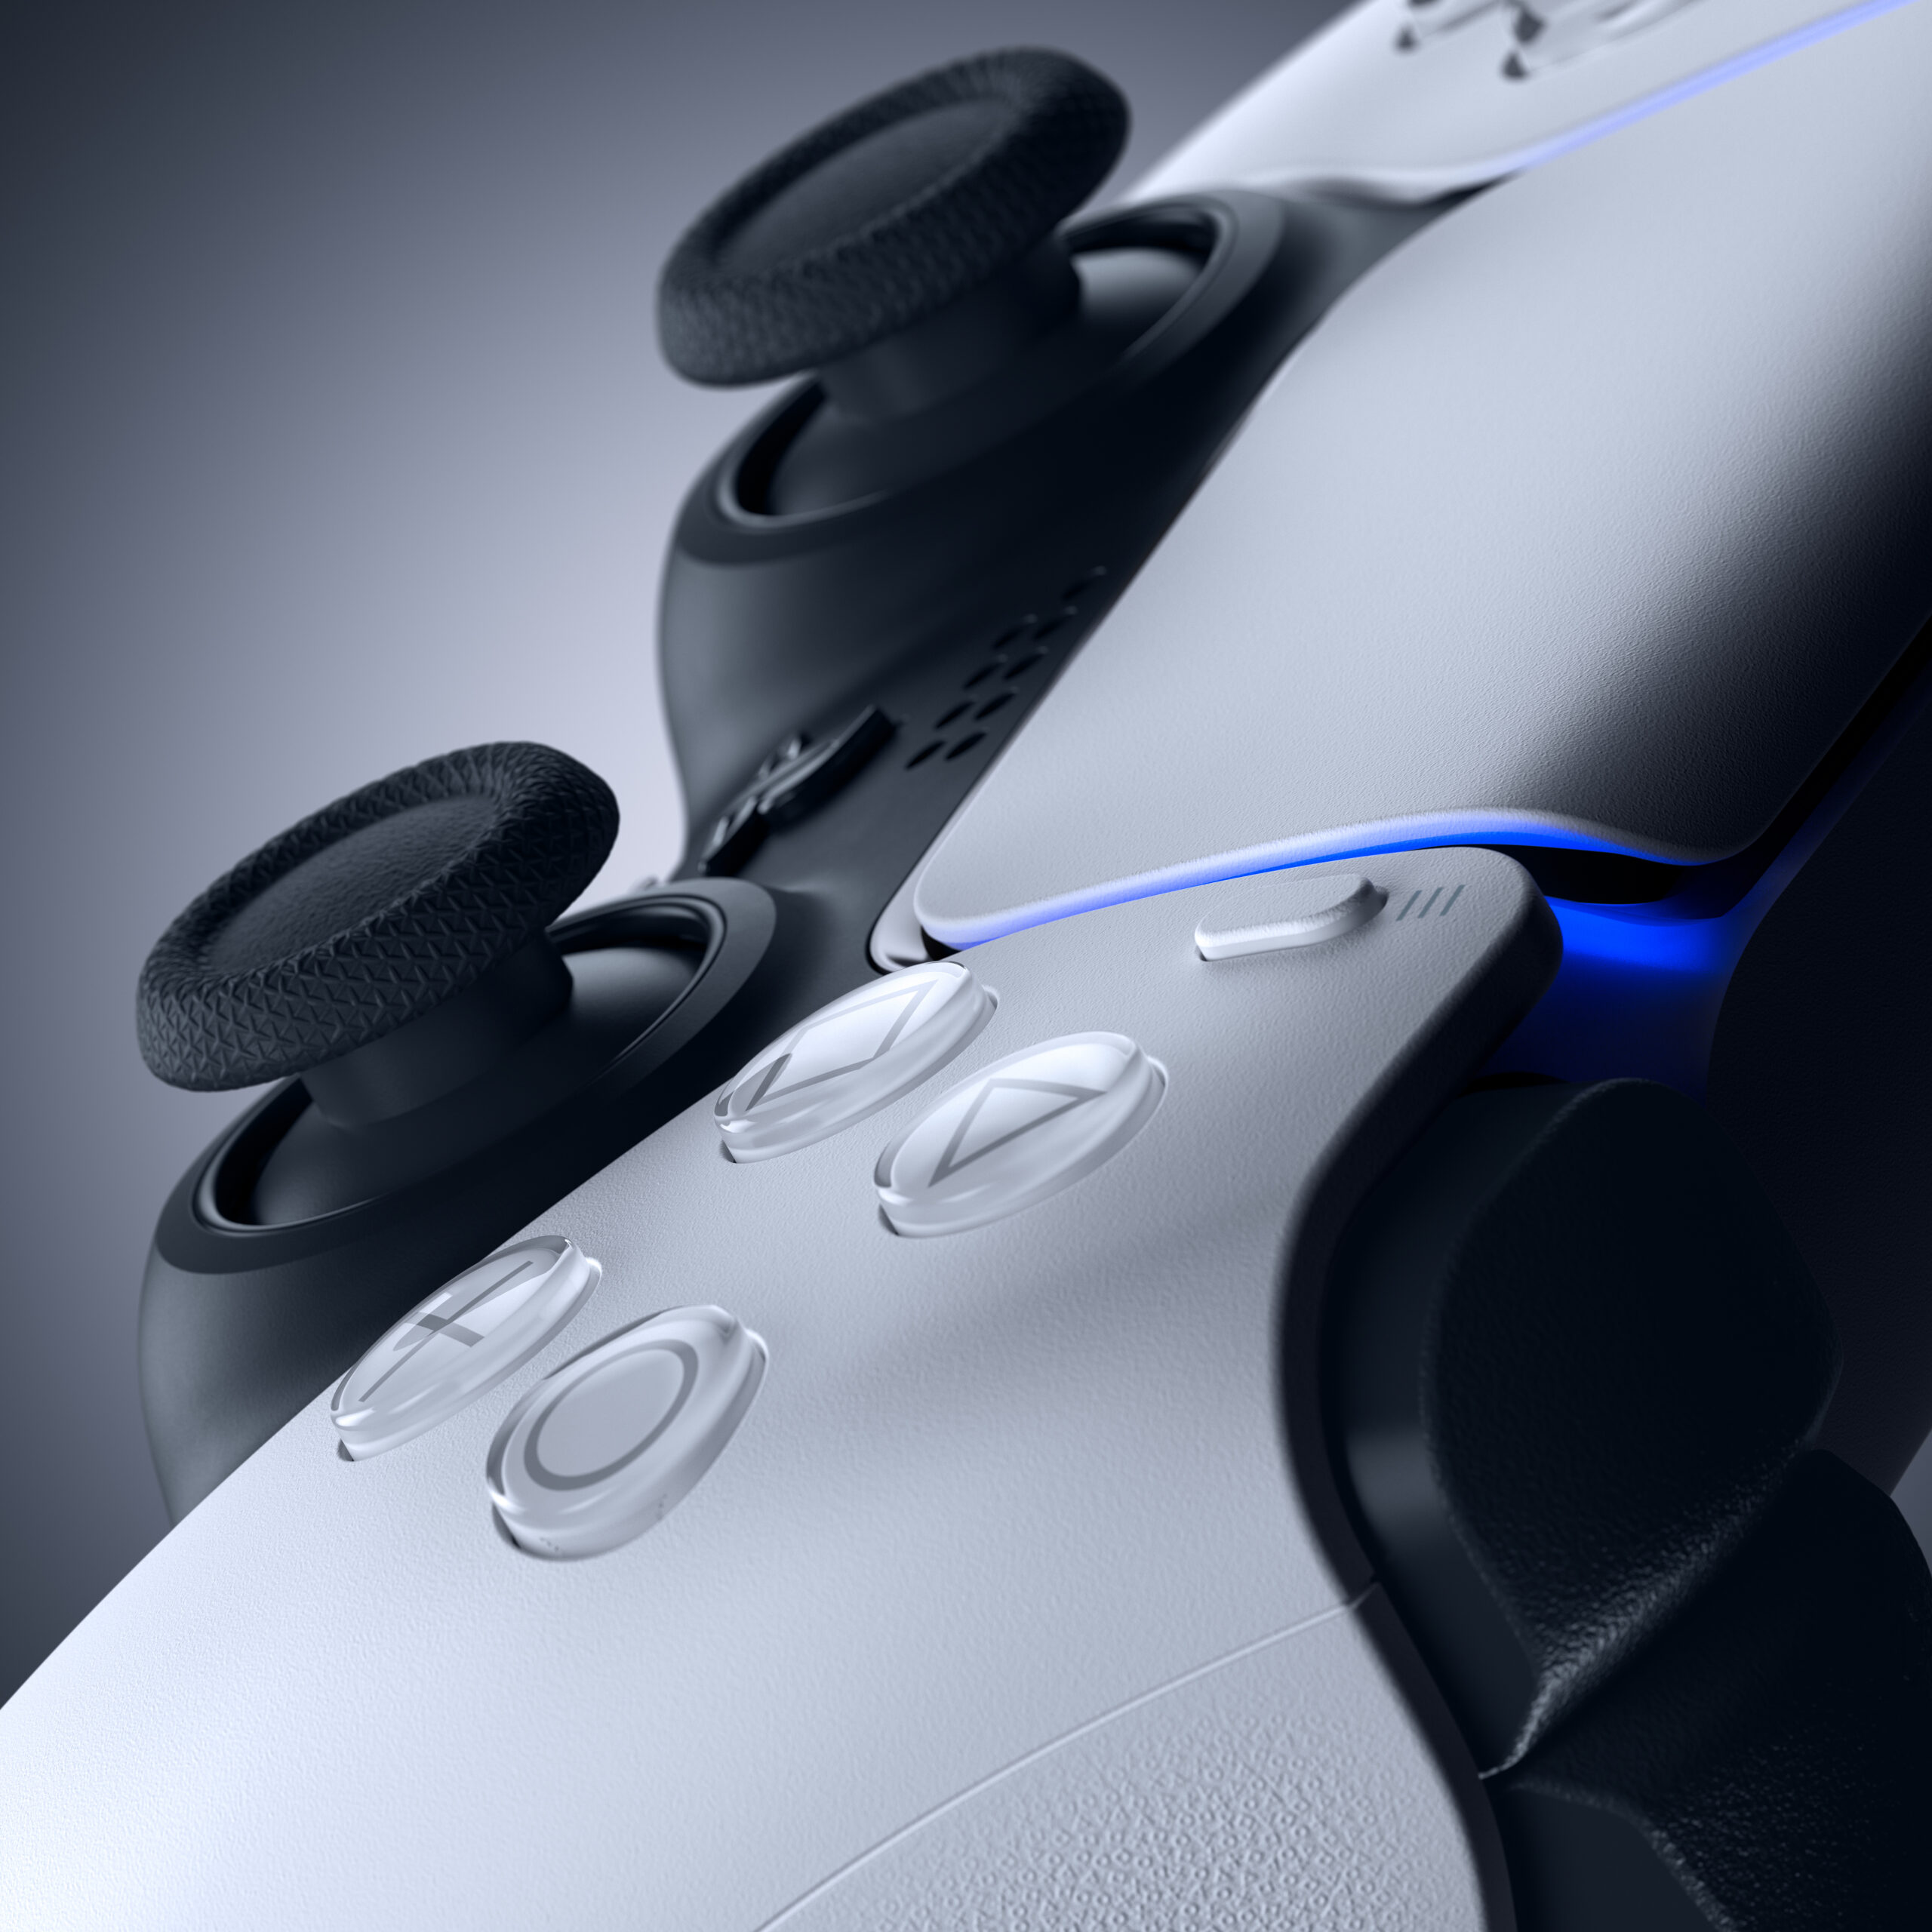 PS5 Hardware and Accessories 16